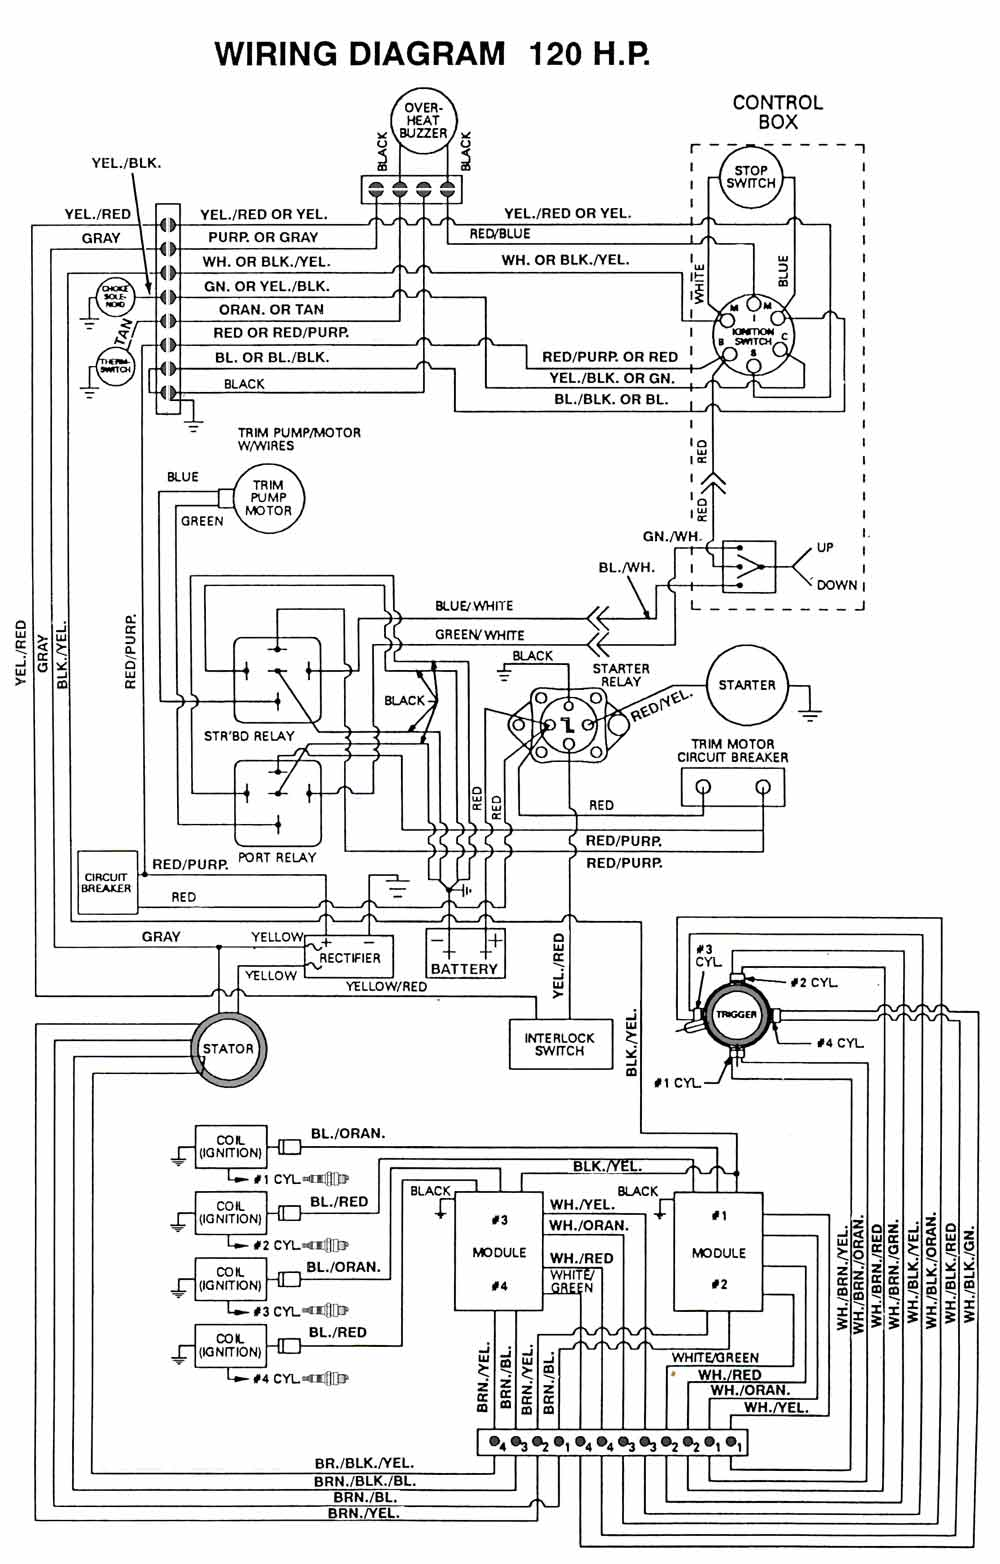 chrysler wiring diagrams schematics 2001 ford f150 xl radio diagram mastertech marine -- & force outboard